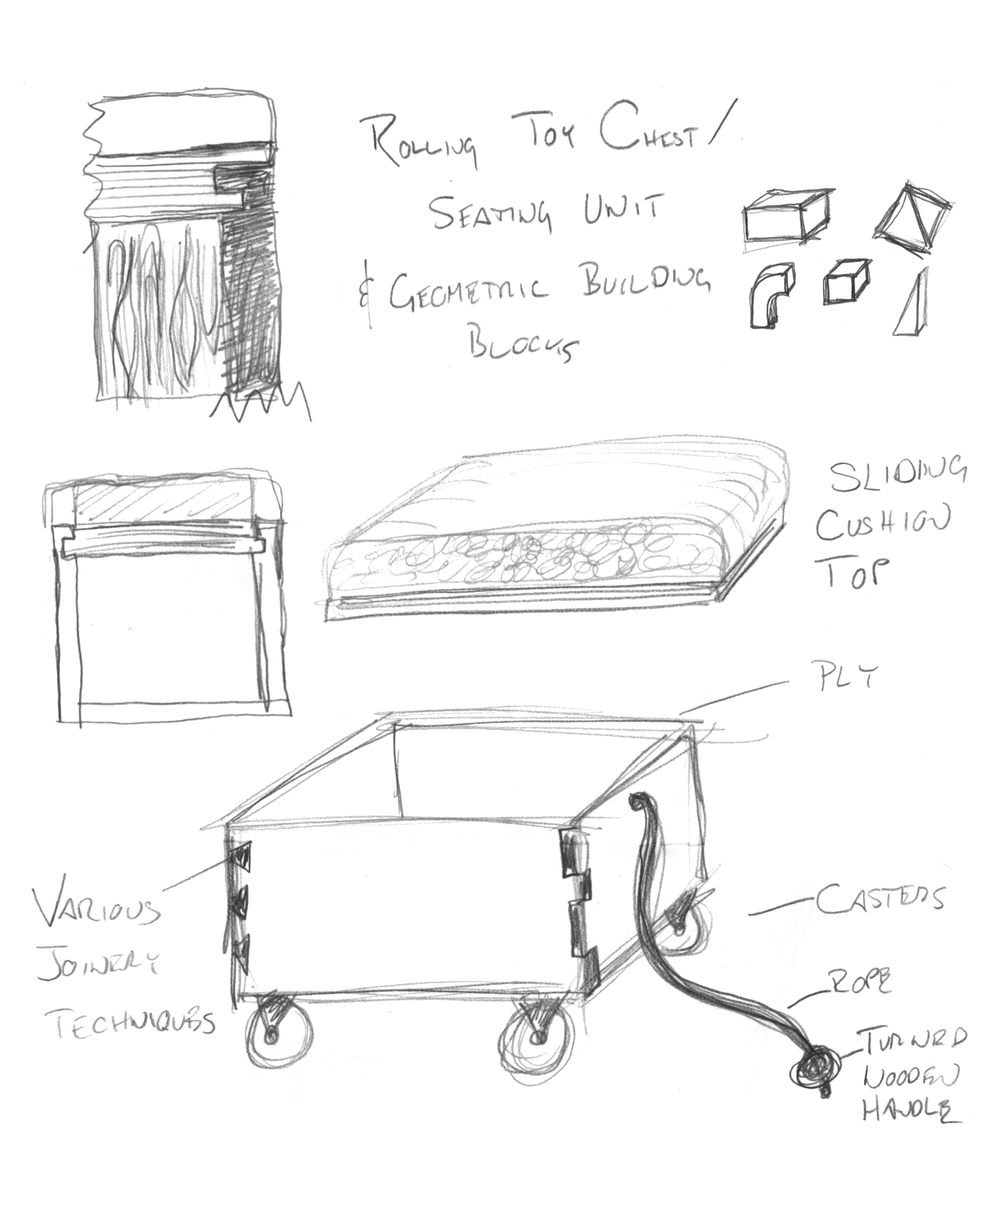 Toy Chest Sketch_4